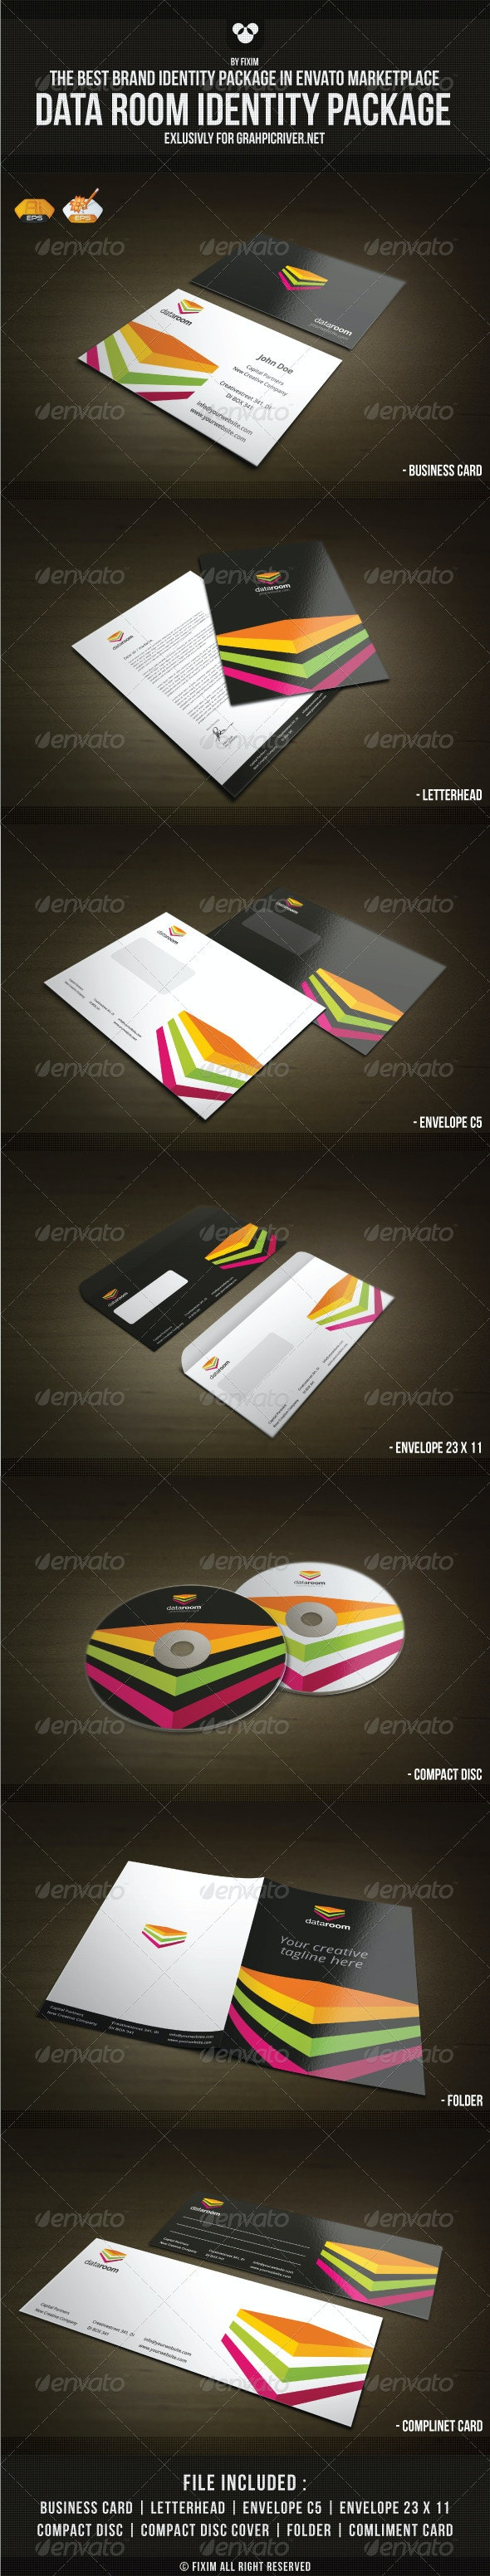 Data Room Identity Package - Stationery Print Templates